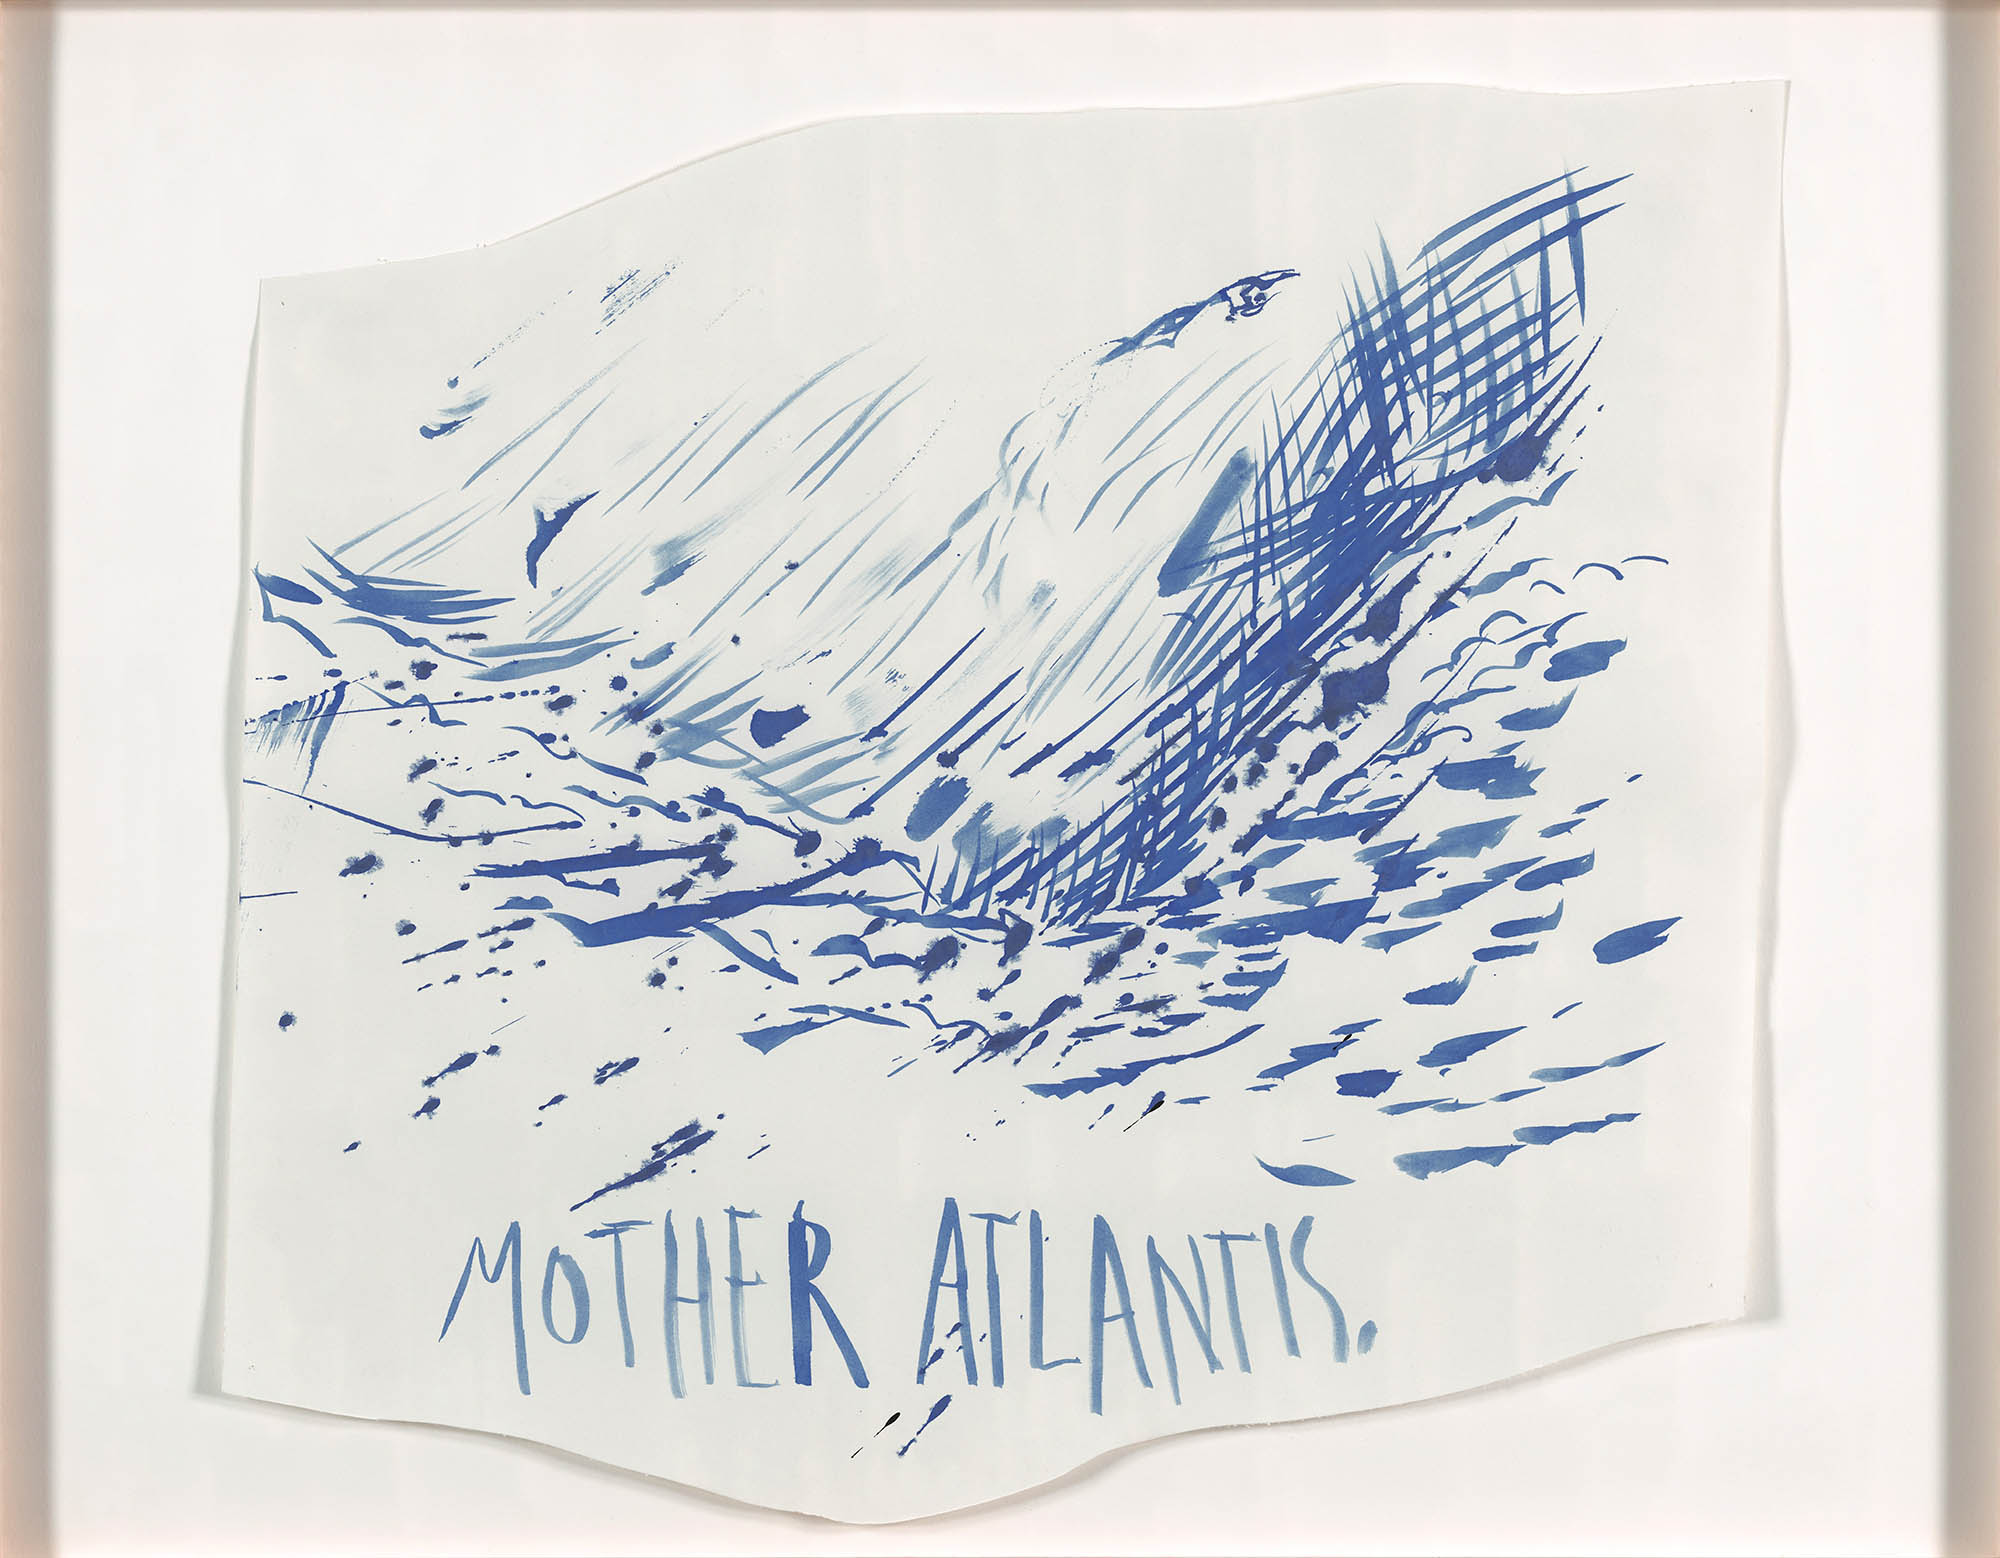 Raymond Pettibon, Untitled (Mother Atlantis), 2003